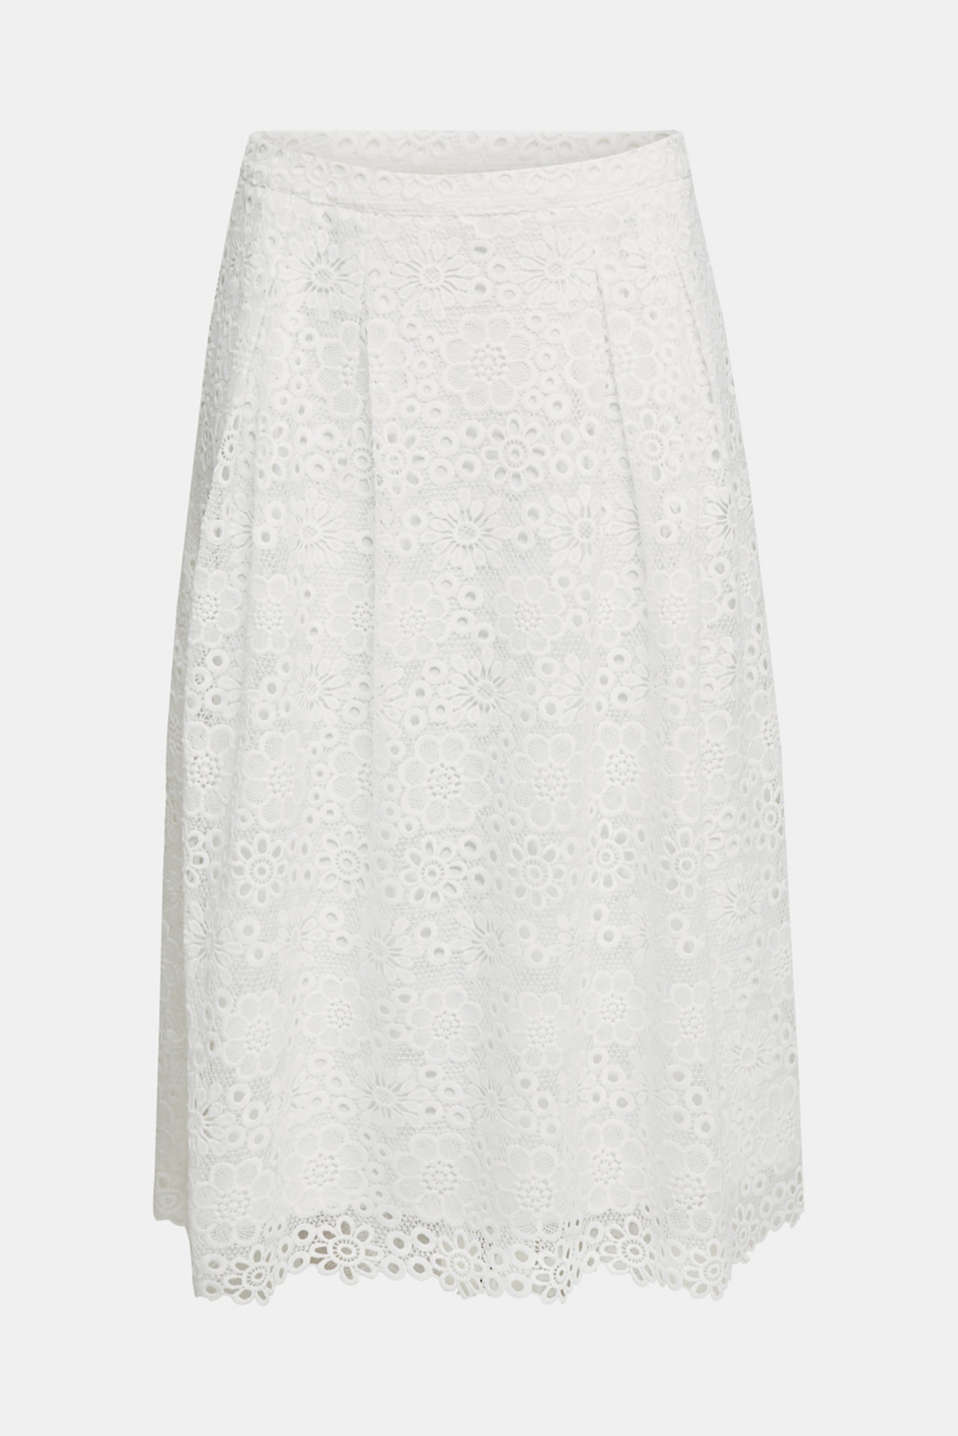 Lace midi skirt in A-line design, WHITE, detail image number 6